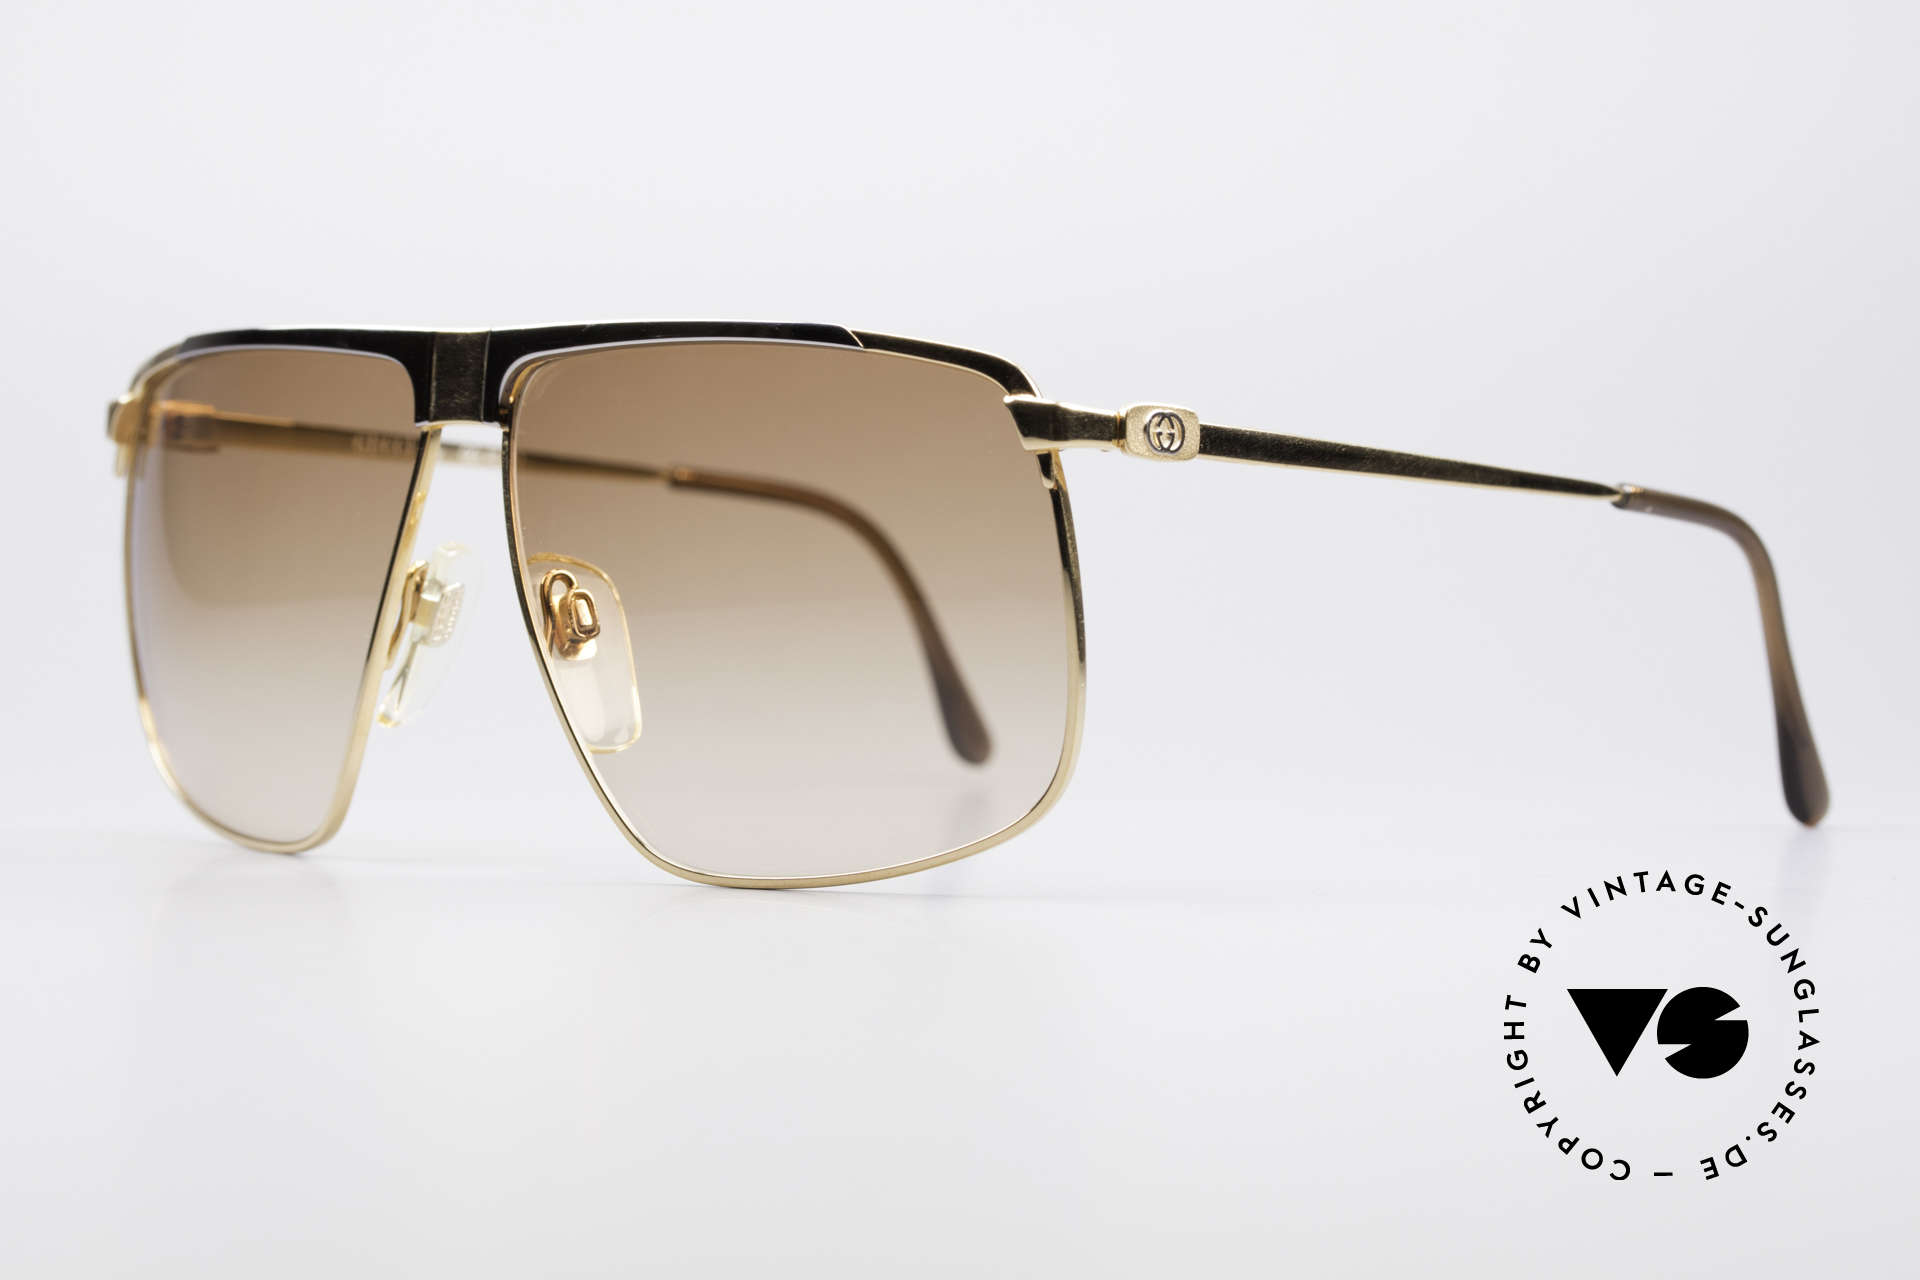 Gucci GG40 22kt Gold-Plated Sunglasses, with the famous Gucci symbol (2 connected stirrups), Made for Men